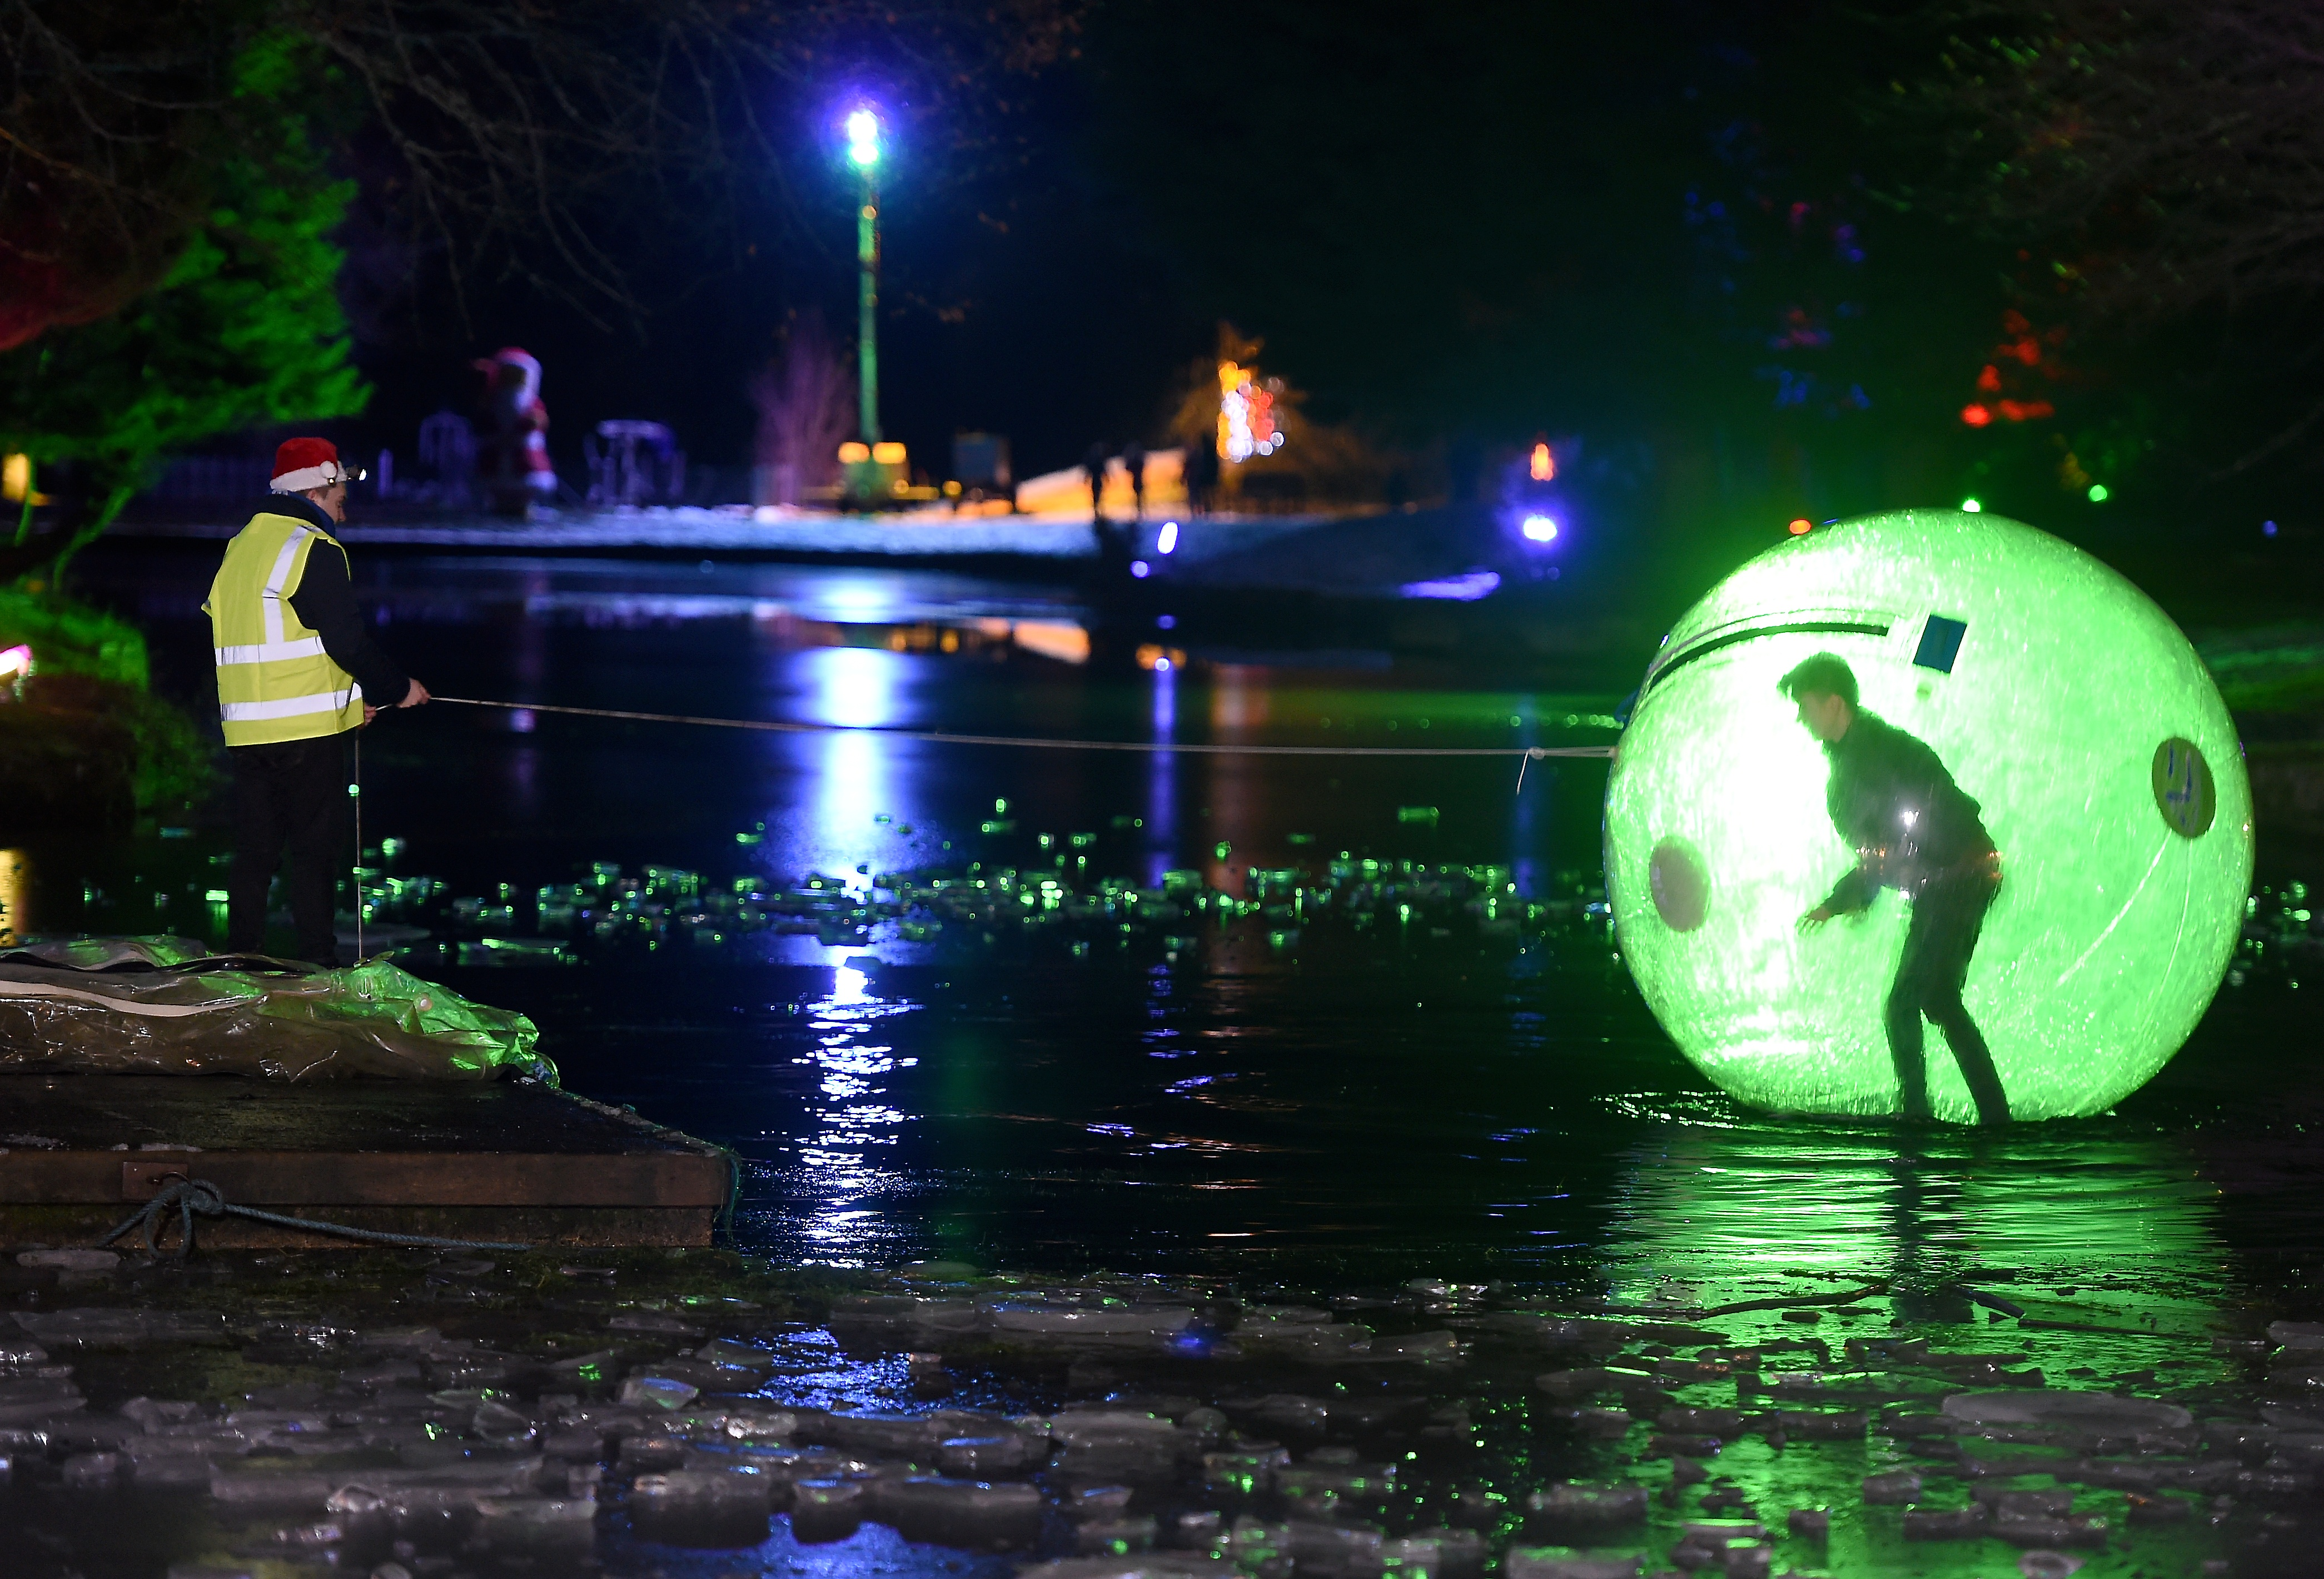 The boating lake lit up during the Winter Wonderland at Whin Park, in Inverness. Photograph by Sandy McCook